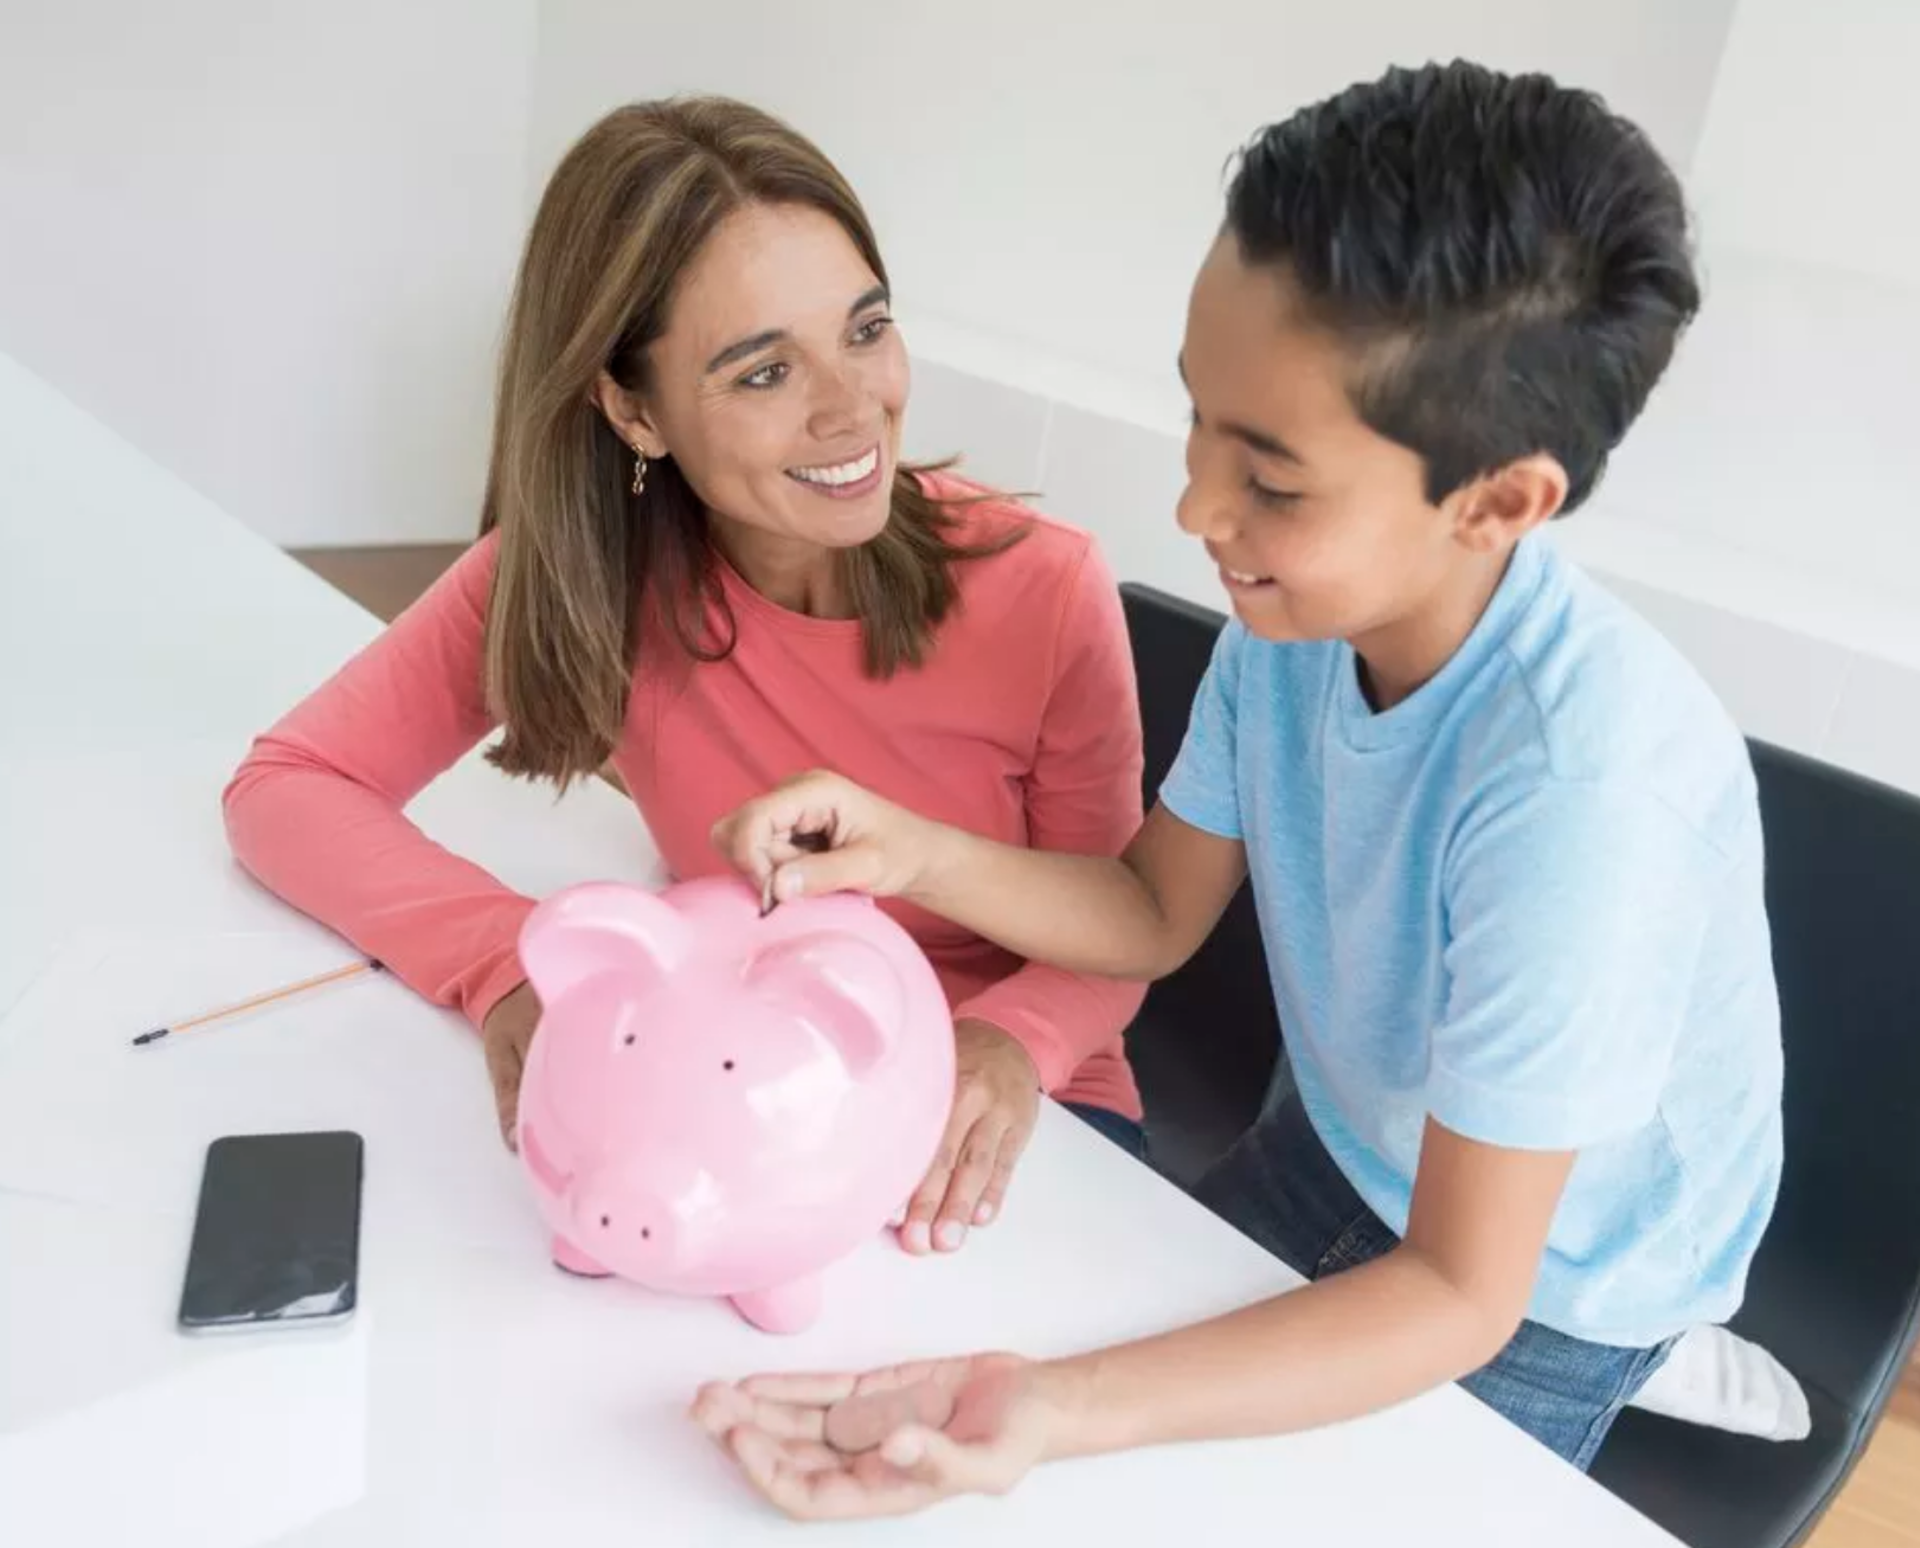 Saving Money to Buy a House, While Renting